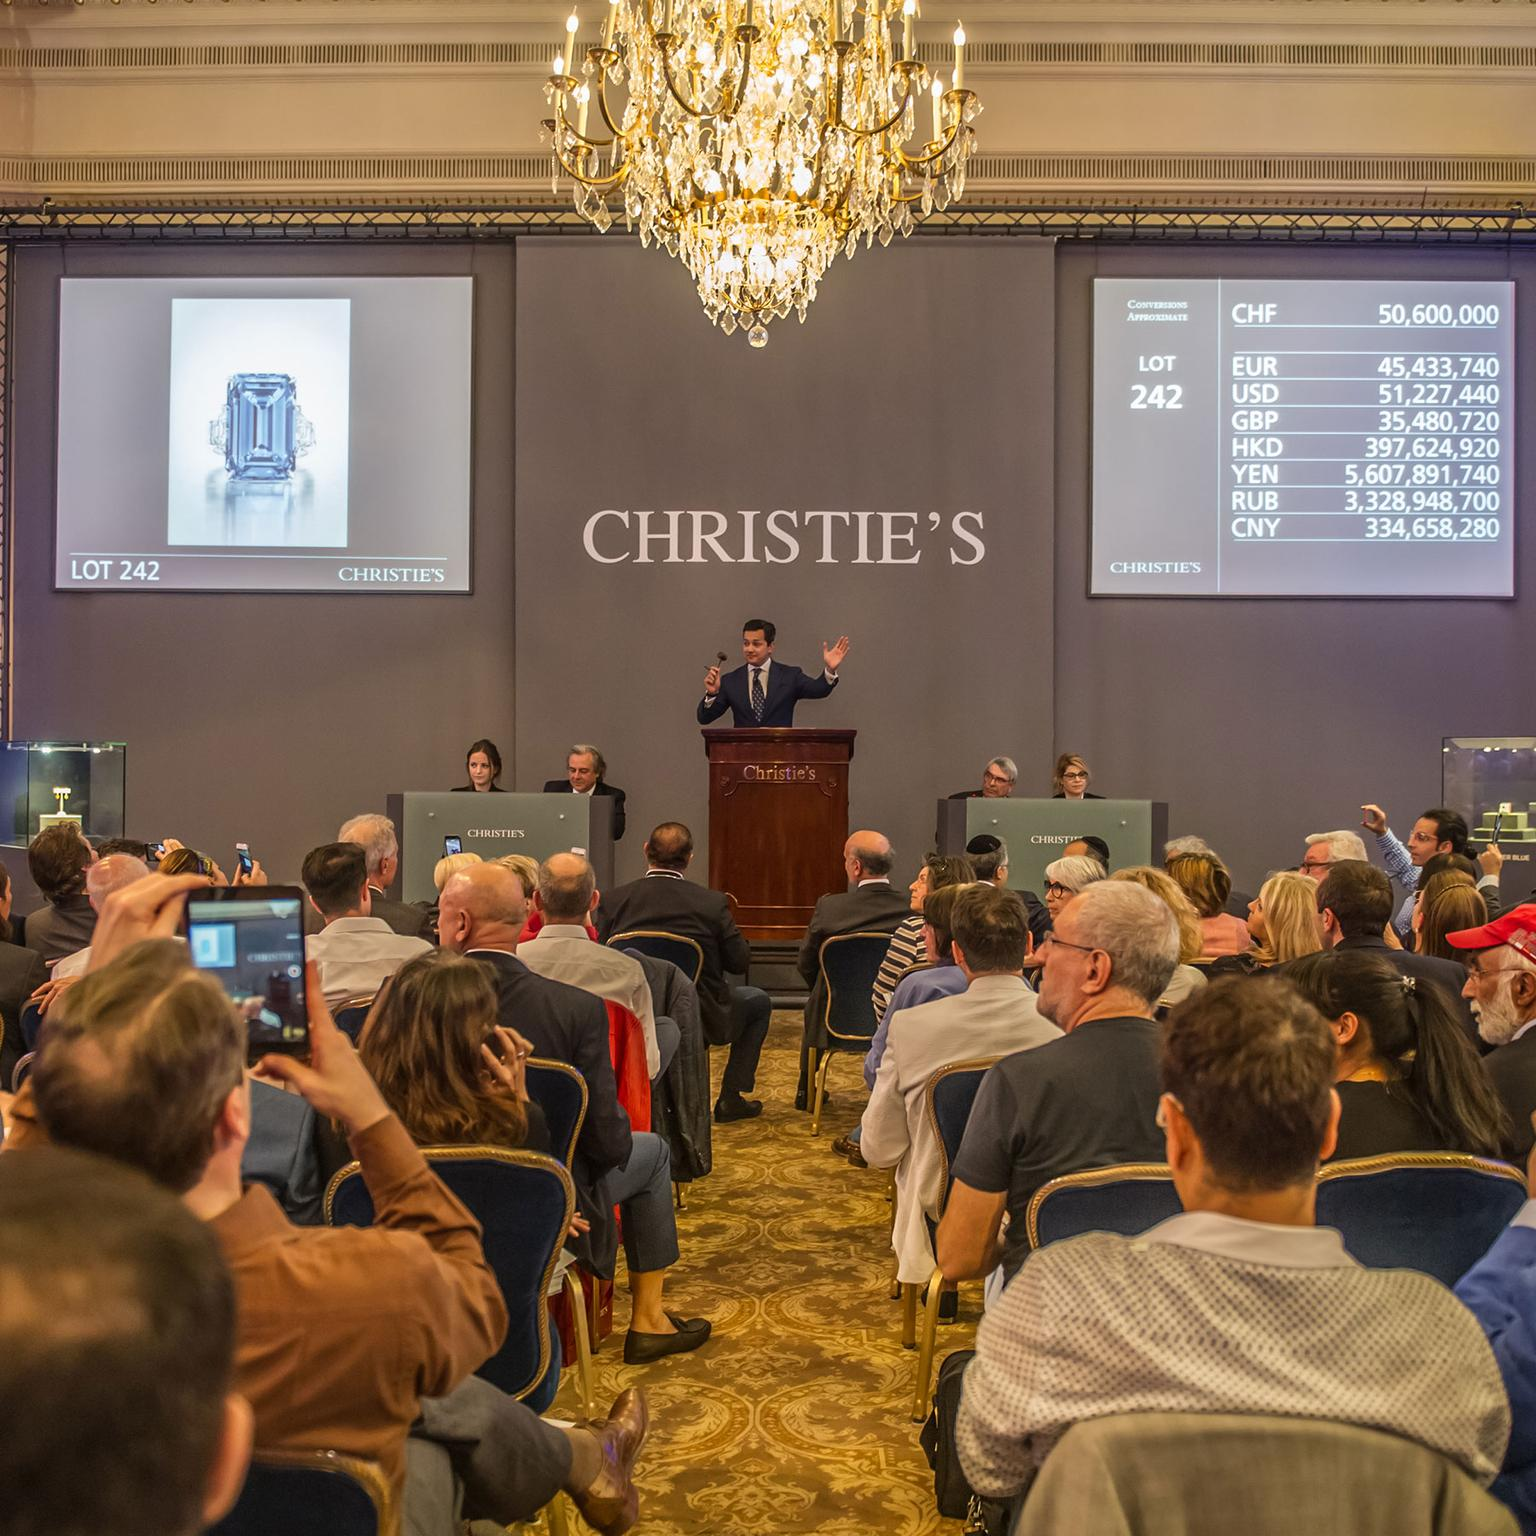 Christie's auction house